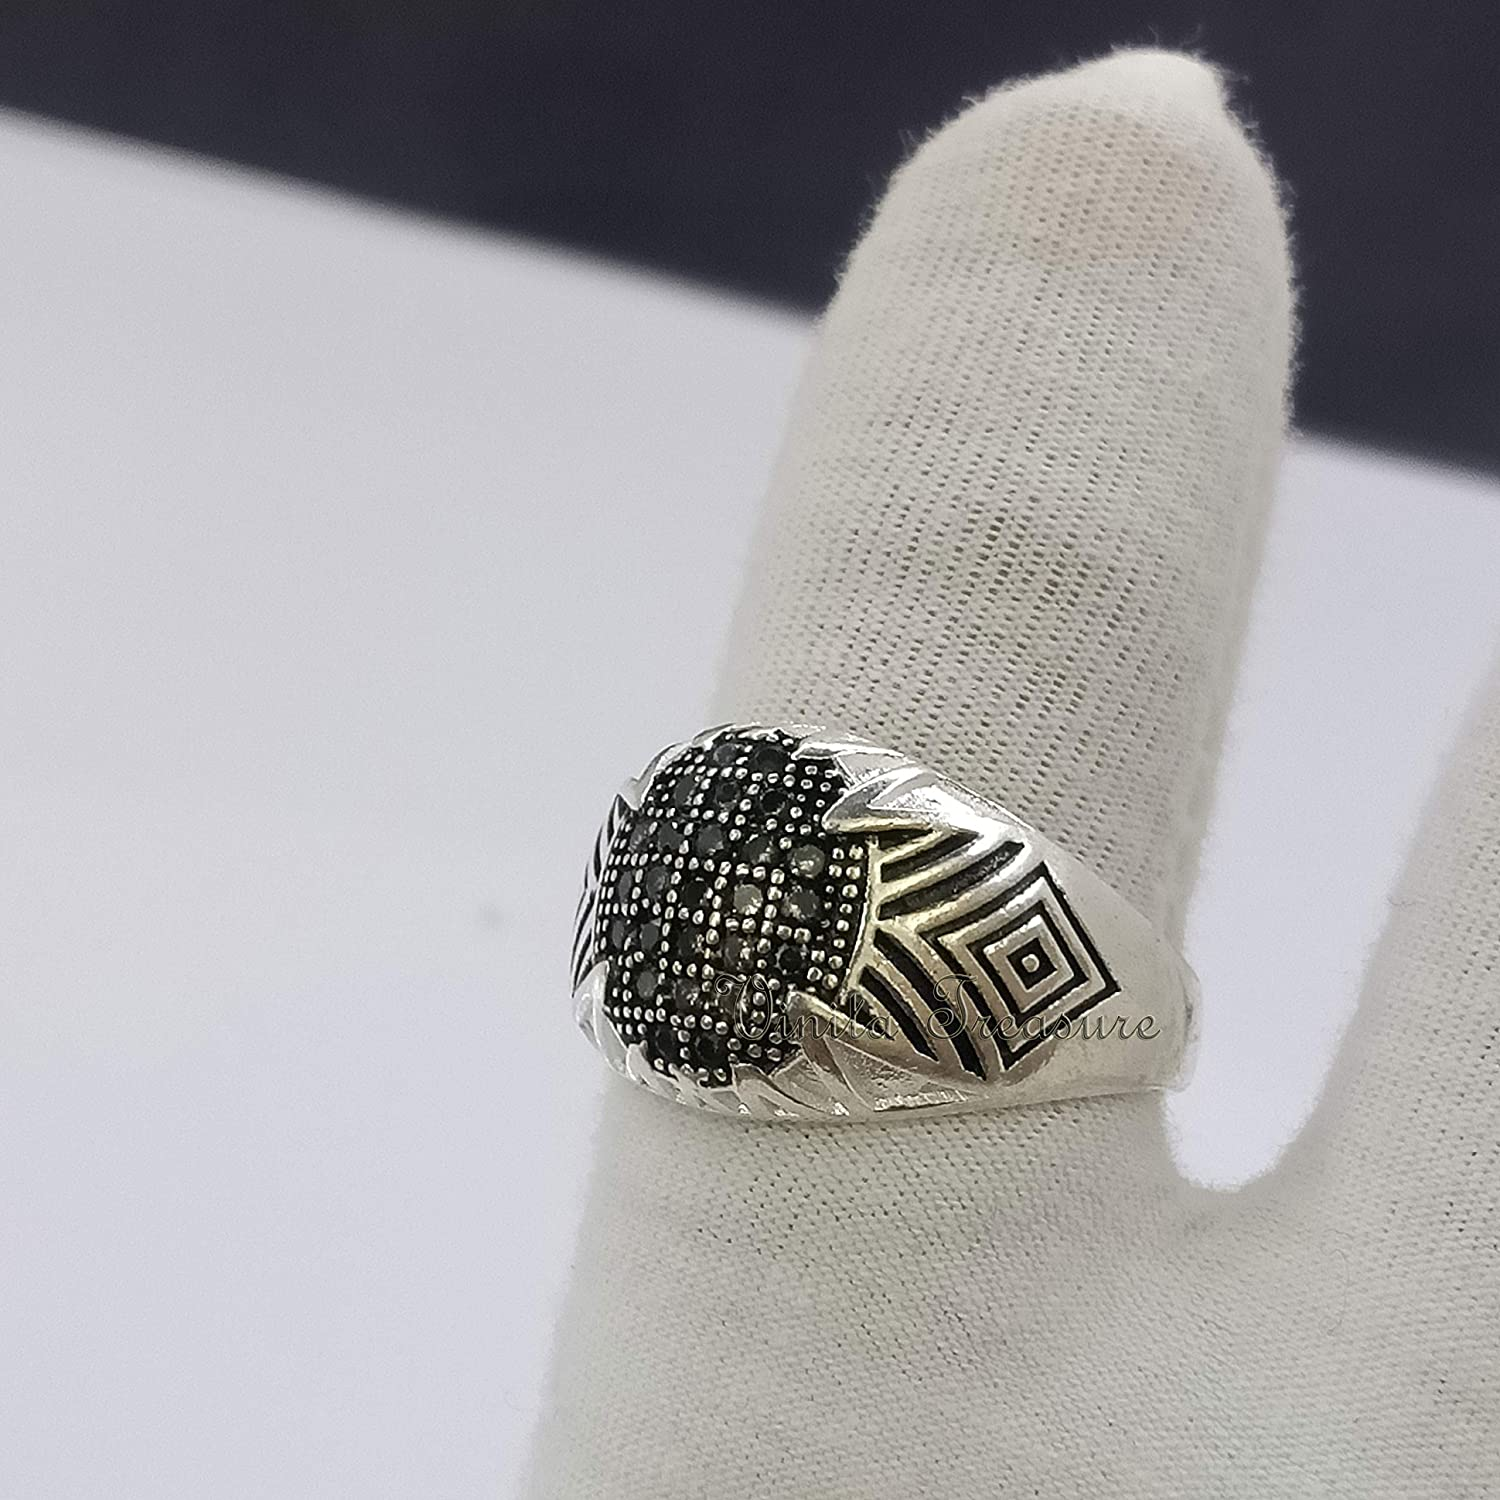 New sales Mens Zircon Ring 92.5 with Silver St Sterling Free shipping anywhere in the nation